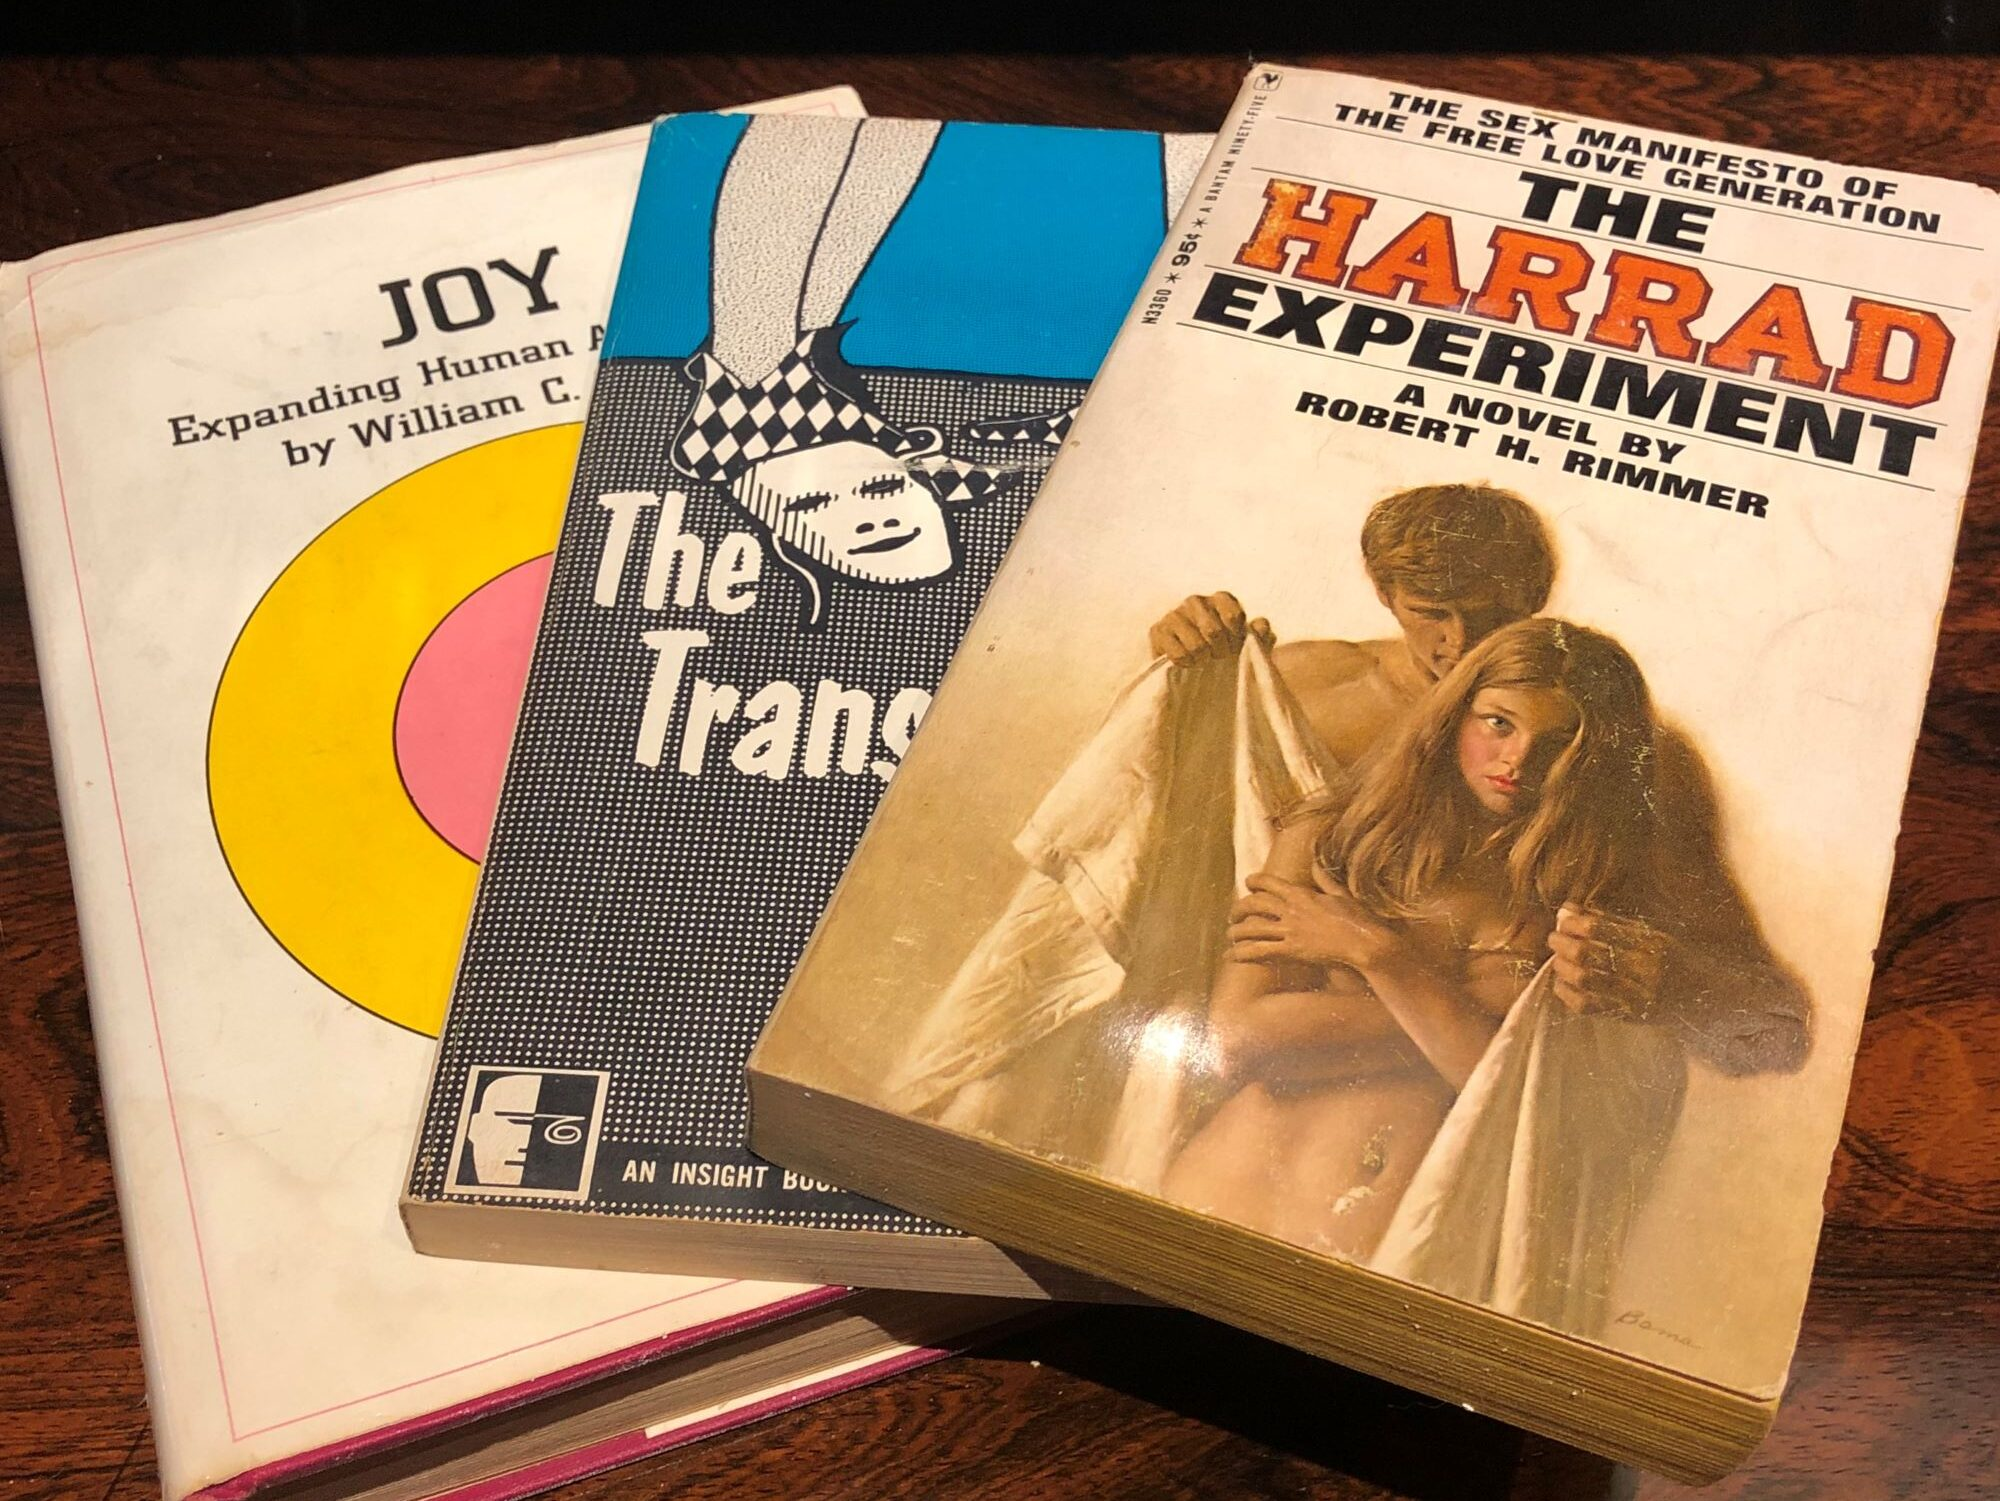 I had the good fortune of stumbling across three books in 1967 when I was 17 that shaped the course of the rest of my life. All three fell under the umbrella of the then-emerging Human Potential Movement that asked the question: How far can we go in maximizing our potentials for love, freedom, and joy?   The first book that opened my eyes was The Transparent Self by Sidney Jourard who spelled out the importance of living life fully disclosed—a radical concept then and now. Jourard made clear that secrets kill—physically, emotionally, and spiritually, while destroying relationships. After reading the book, I embraced truth—my own rather than the culturally prescribed version—and stood by it. The second book was Joy by William Schutz. Years before The Secret was revealed to the world, Schutz said humans can choose to live lives filled with immense joy day after day—that choosing joy over sorrow is a personal decision. I was big into happiness even then, so I signed on, figuring why not? I decided that day to decide every day to let the crummy stuff go and revel in joy.  Completing the trilogy was The Harrad Experiment, Robert Rimmer's novel set in a fictitious New England college with sex as its core curriculum. Throughout the book, co-ed roommates slept with each other on a rotational basis, leading readers to wonder who Shelia, Stanley, and the rest would eventually end up with. What I didn't see coming as I eagerly read the descriptions of the students' various sexual encounters (spoiler alert!) was all the main characters getting hitched in a one big group marriage after figuring out they all loved each other and didn't have to leave anyone behind. Harrad had introduced me to the world of polyamory and the concept that love is not finite but rather a renewable resource.   My first polyamorous relationship blossomed during my second year of college. Looking back, it's impossible to say who I loved more, my girlfriend or our boyfriend. The three of us were inseparab